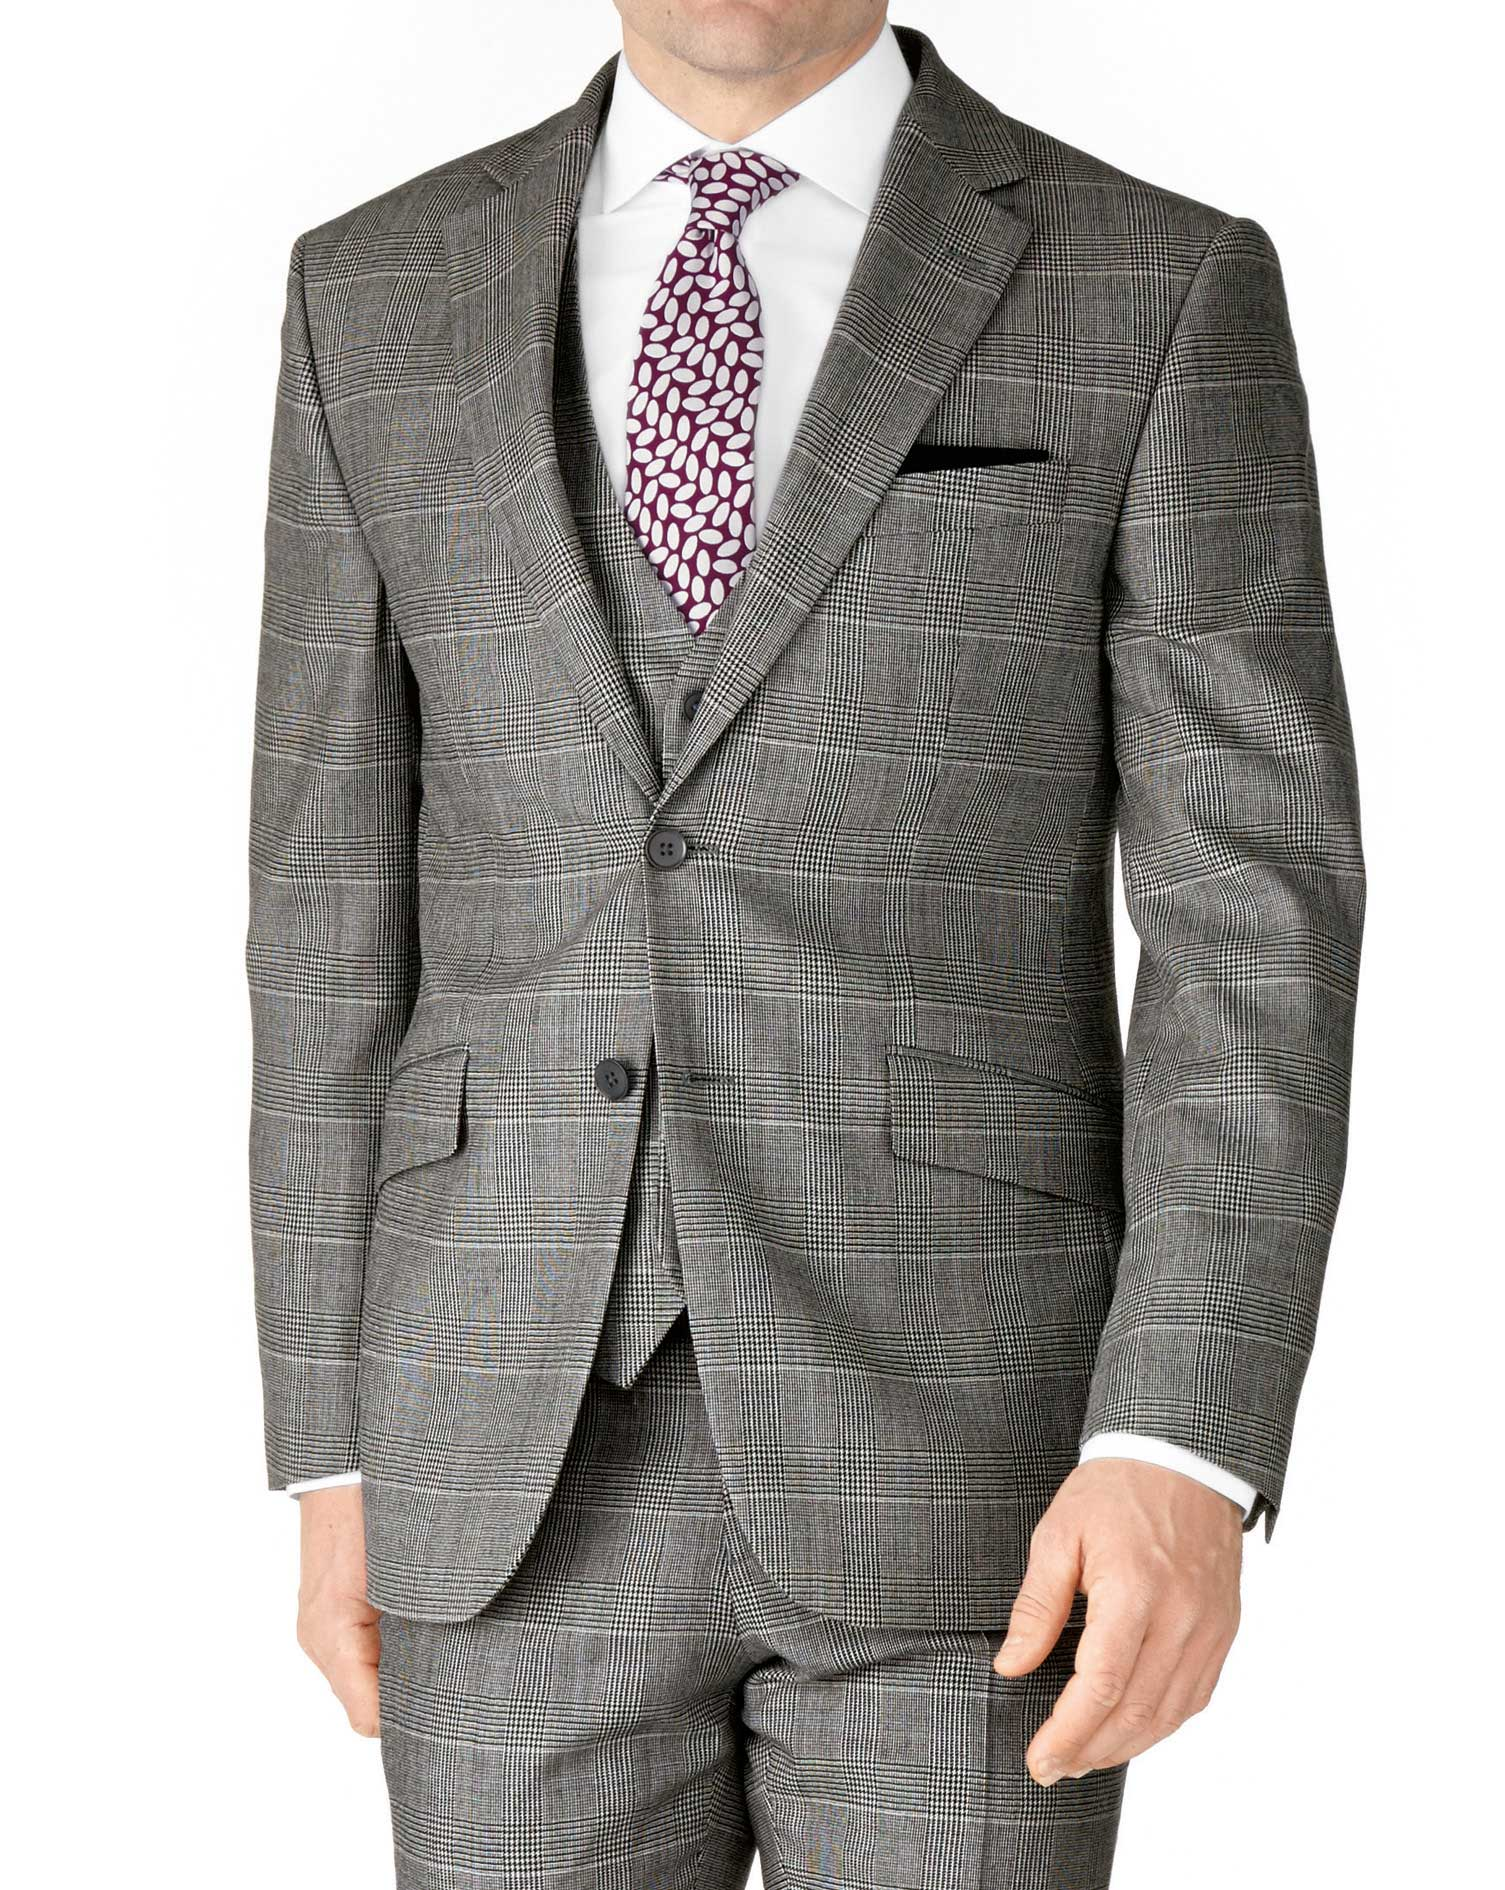 Grey Check Slim Fit Twill Business Suit Wool Jacket Size 46 Regular by Charles Tyrwhitt